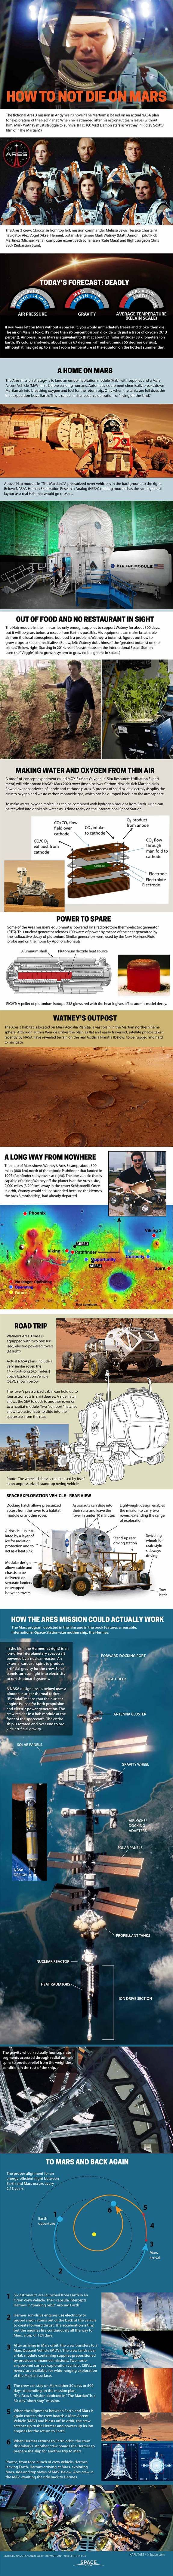 "Surviving 'The Martian': How to Stay Alive on Mars (Infographic) By Karl Tate, Infographics Artist   | 9/30/15 Comparison of ""The Martian"" film with an actual NASA plan for Mars."